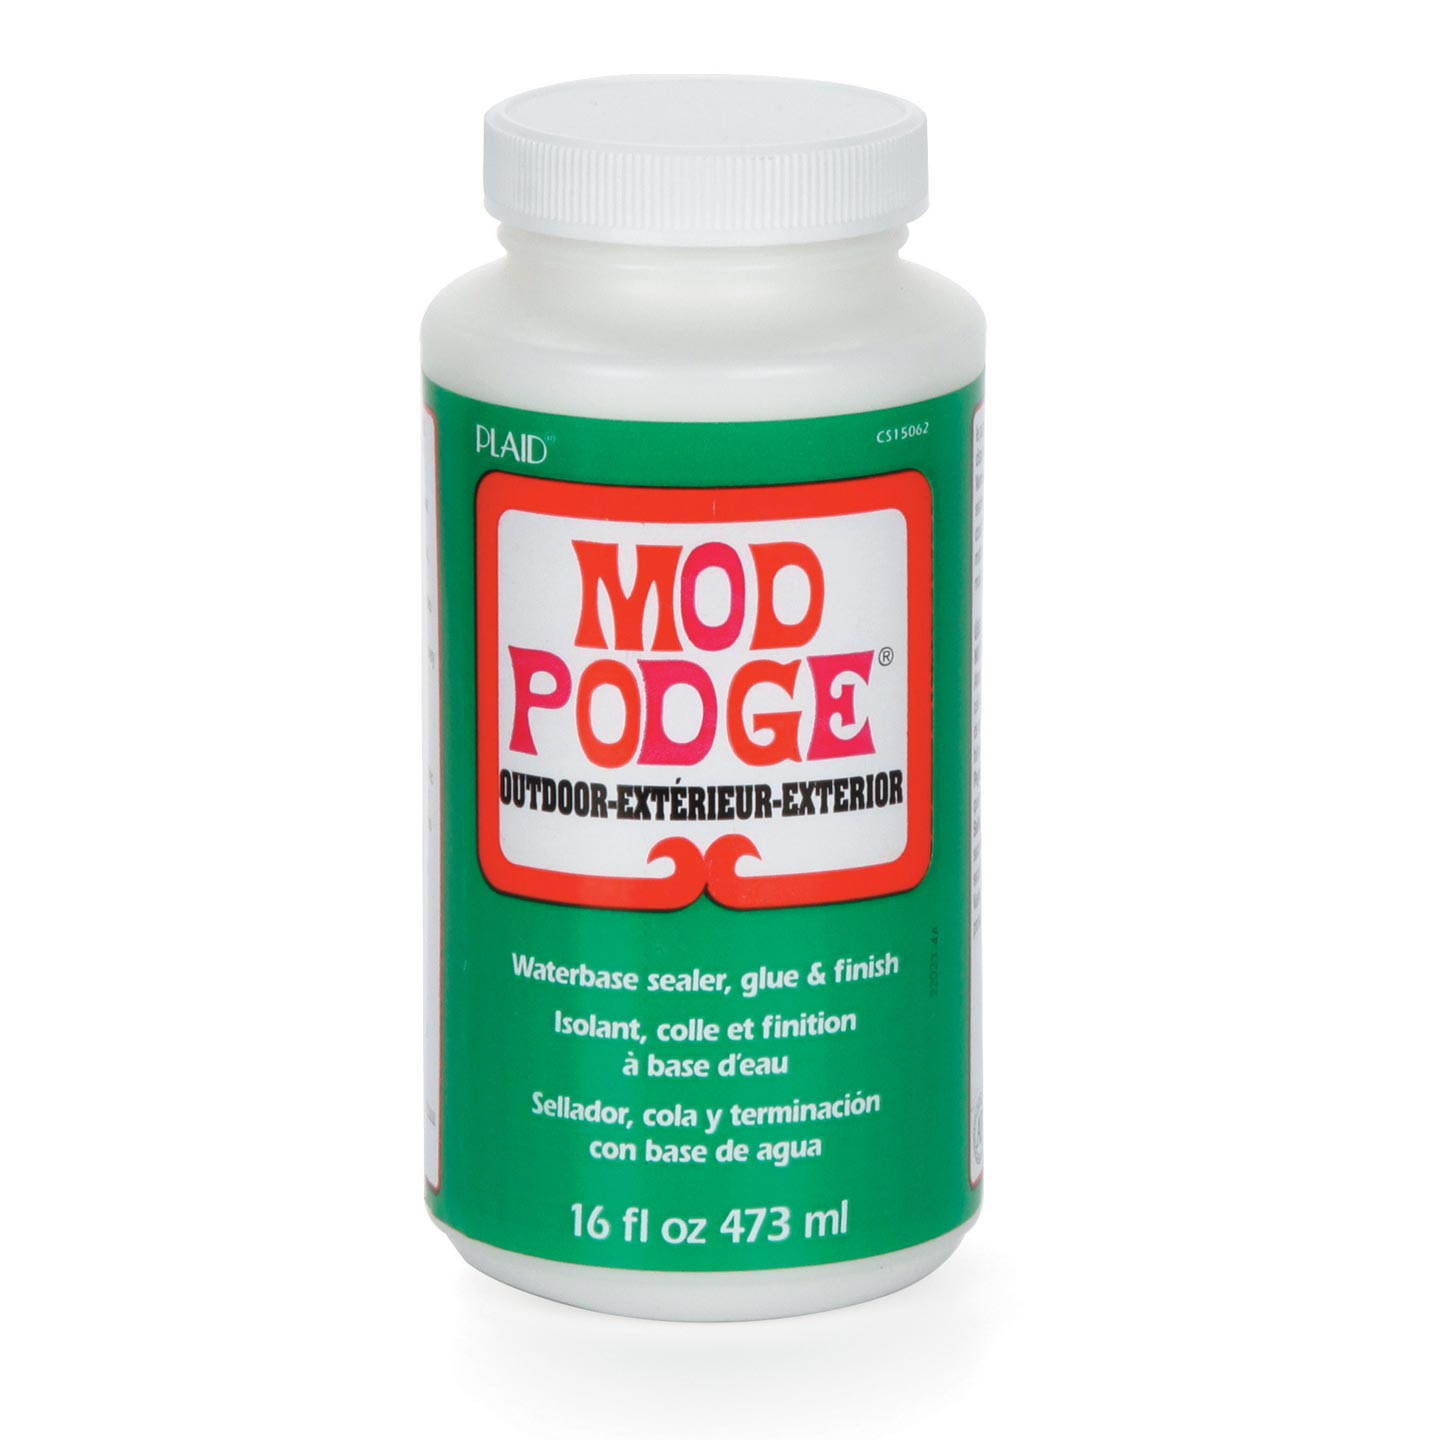 Mod Podge Outdoor